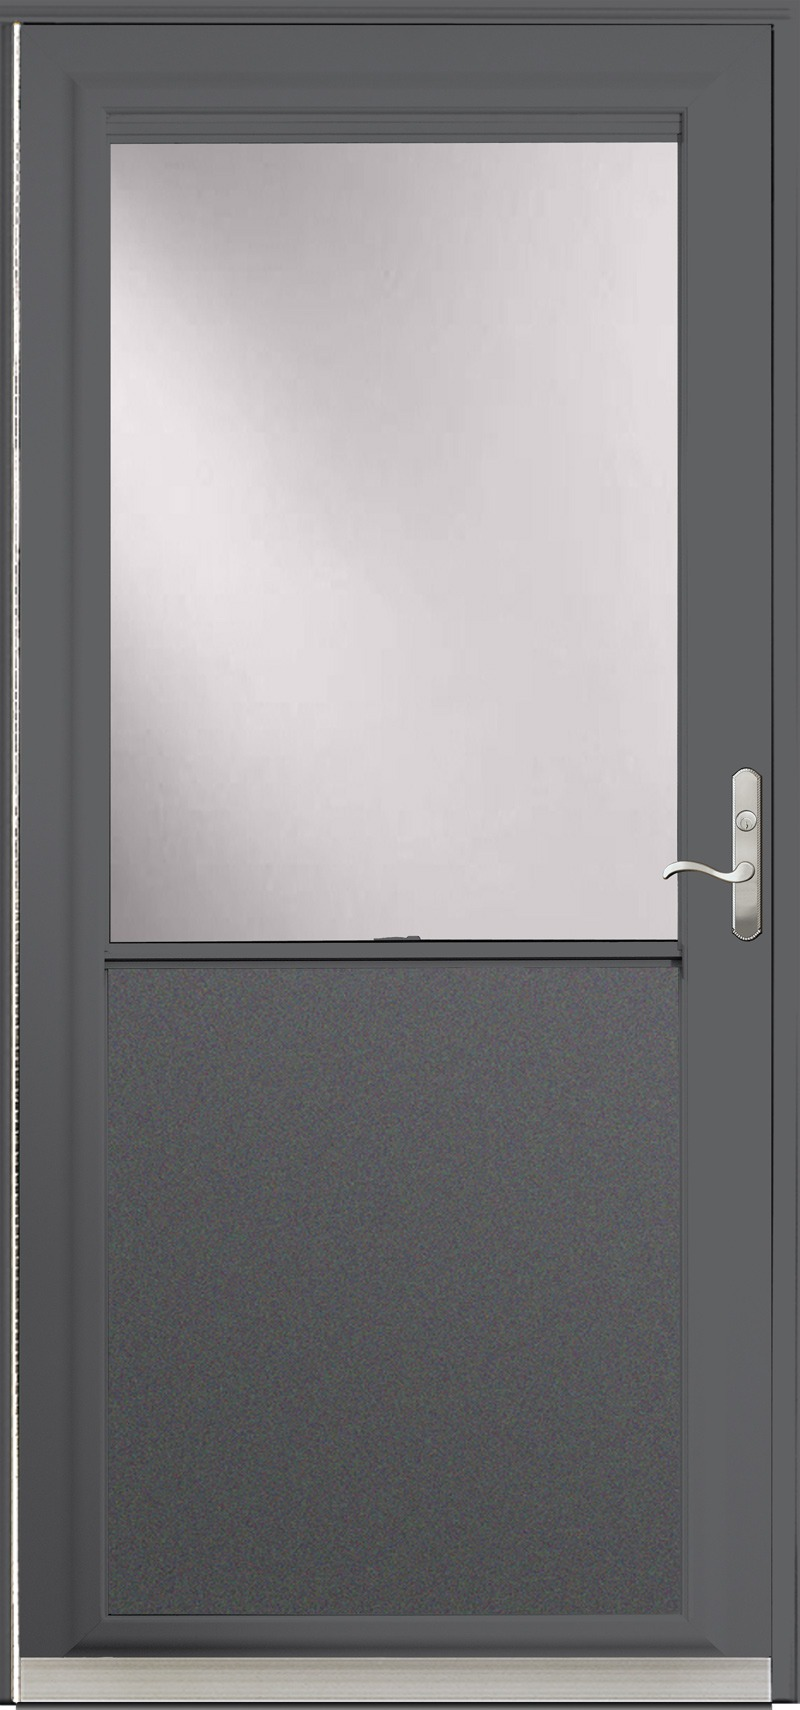 A single dark gray door